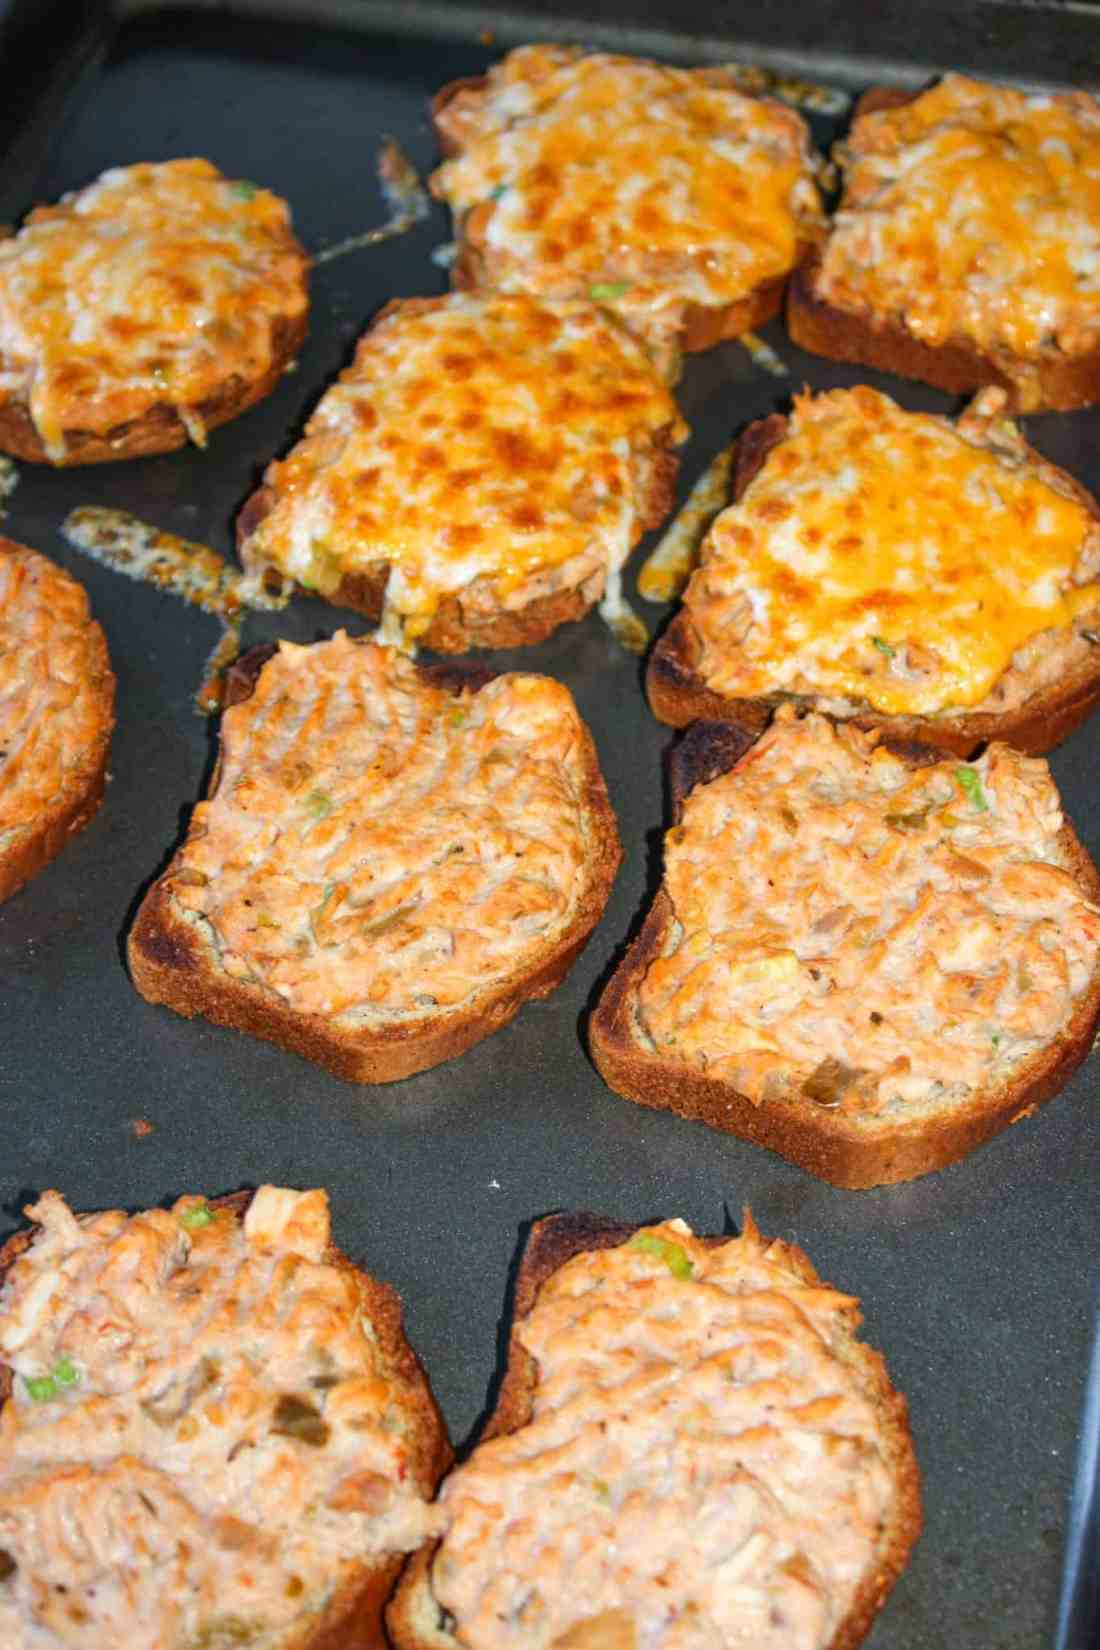 Tuna Bakes are an easy, versatile recipe that can be quickly mixed up for a hearty lunch.